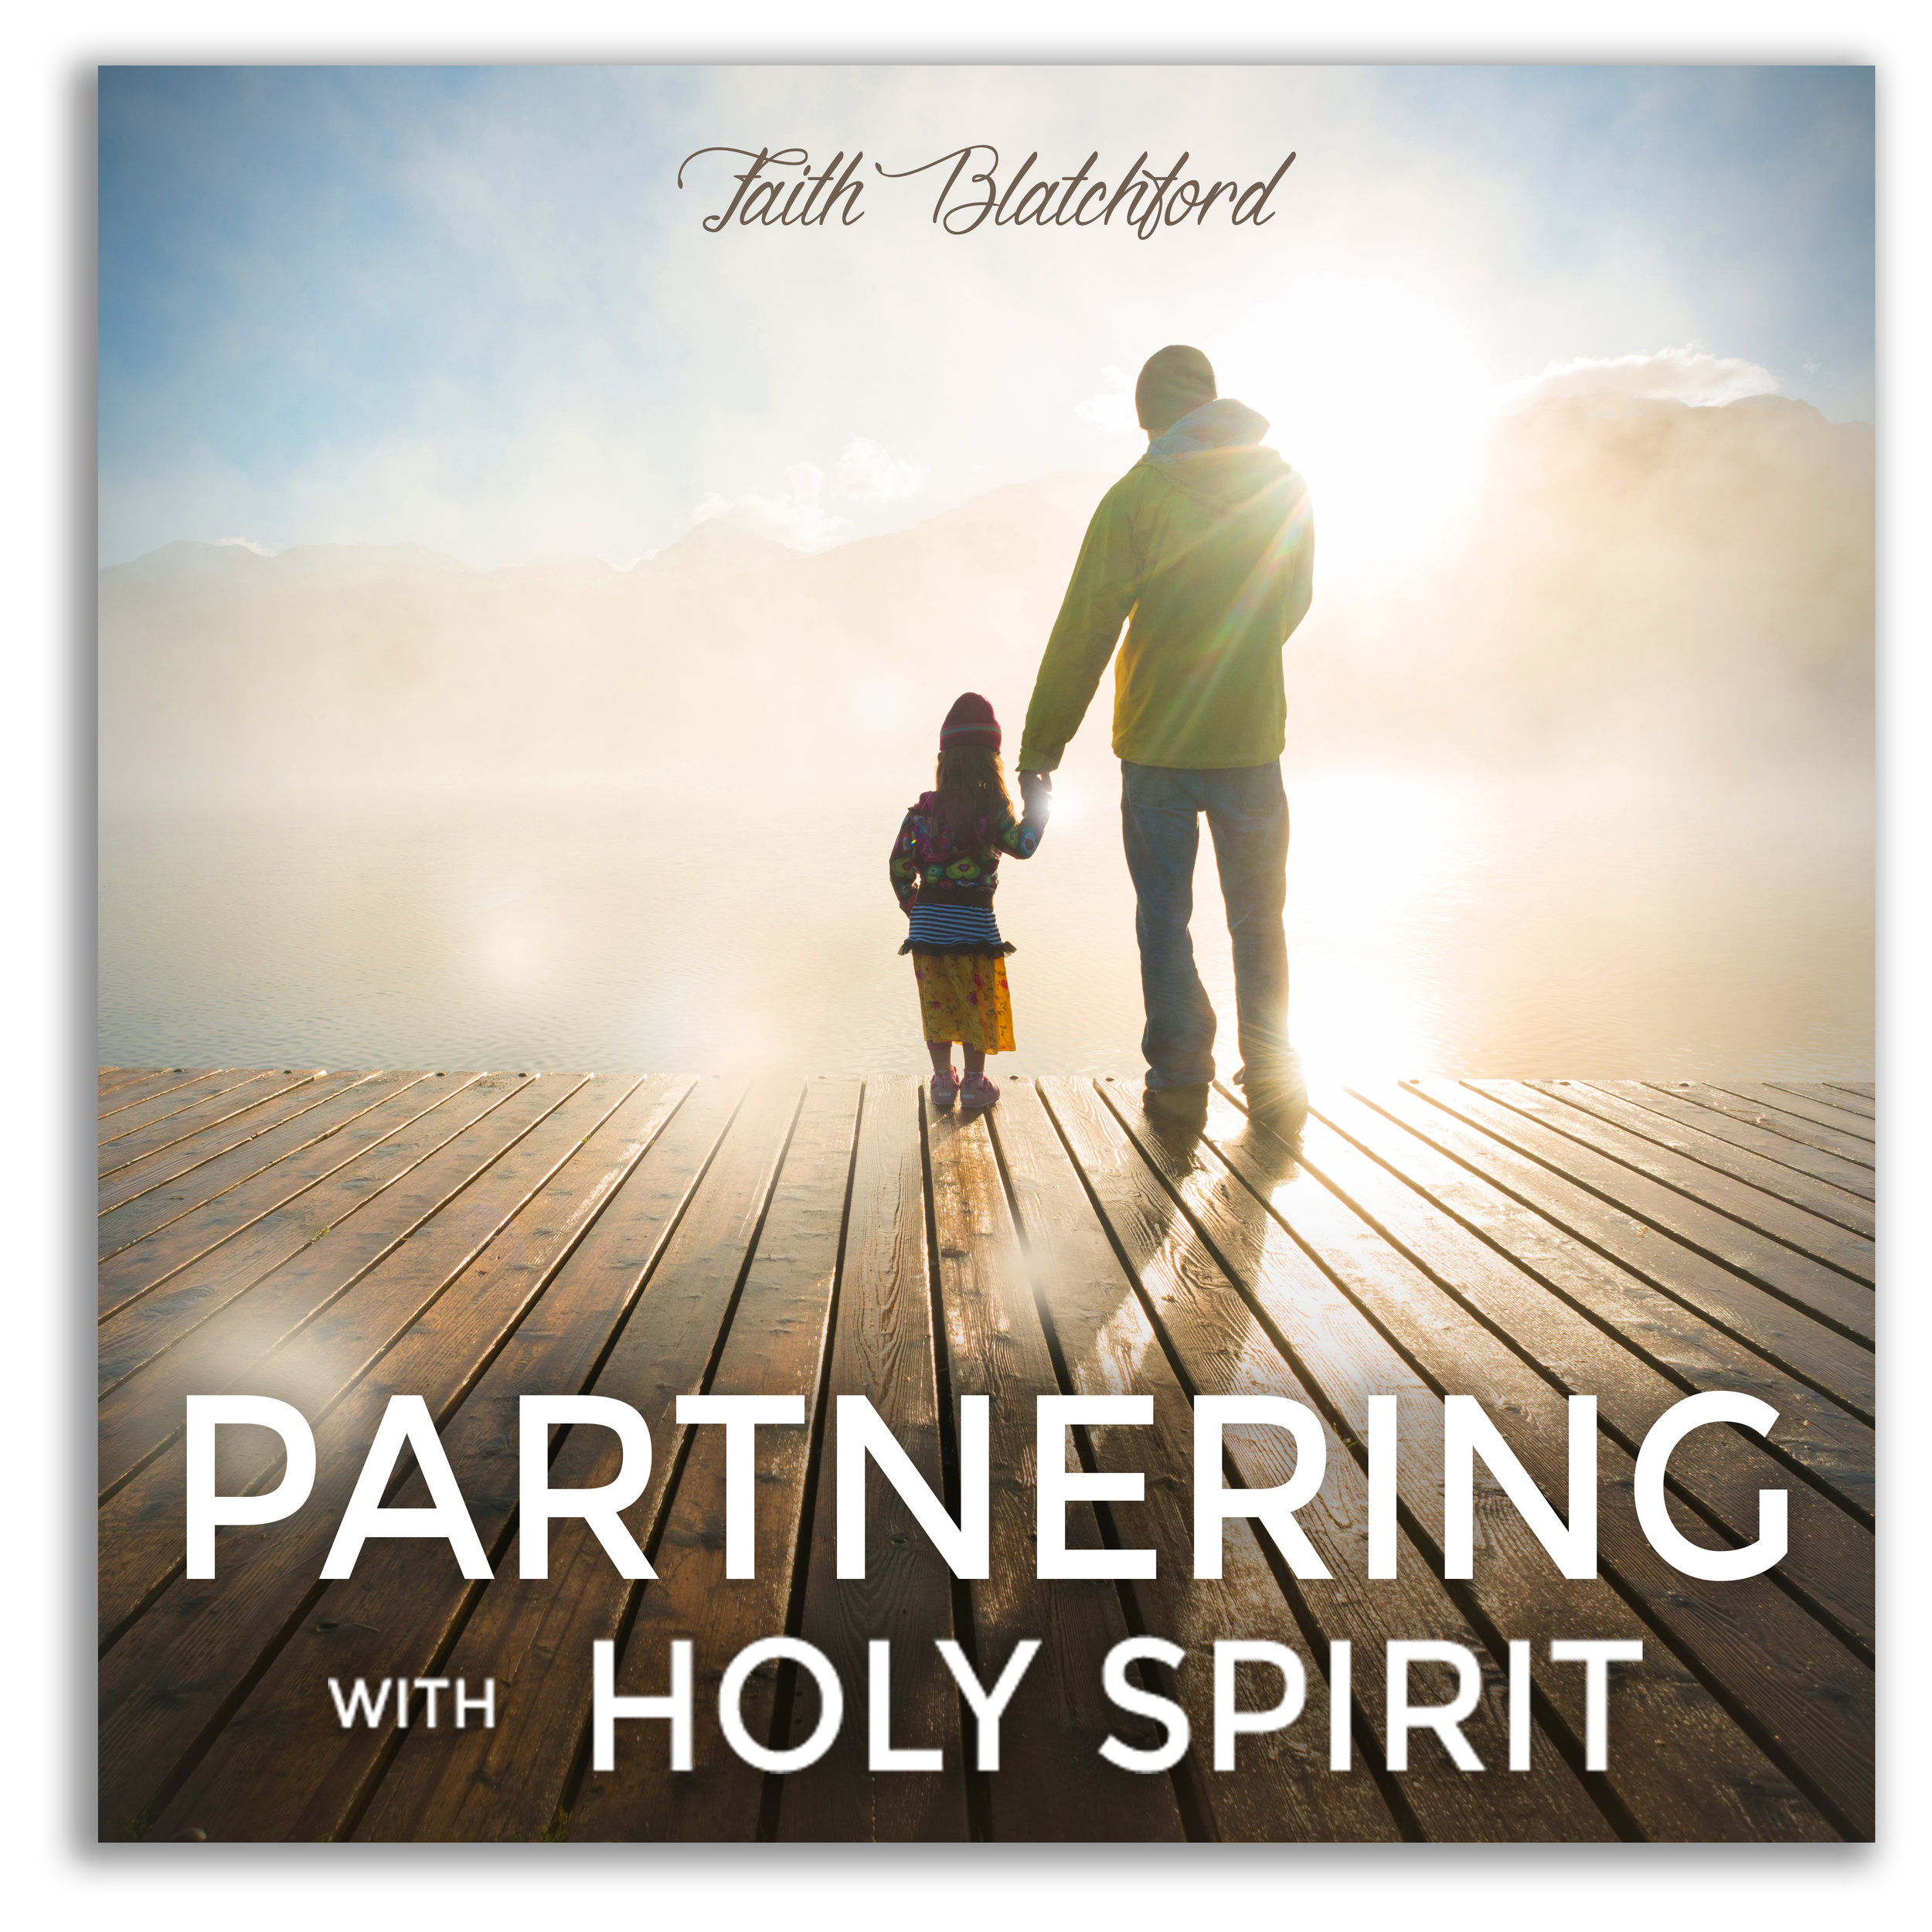 Partnering with Holy Spirit